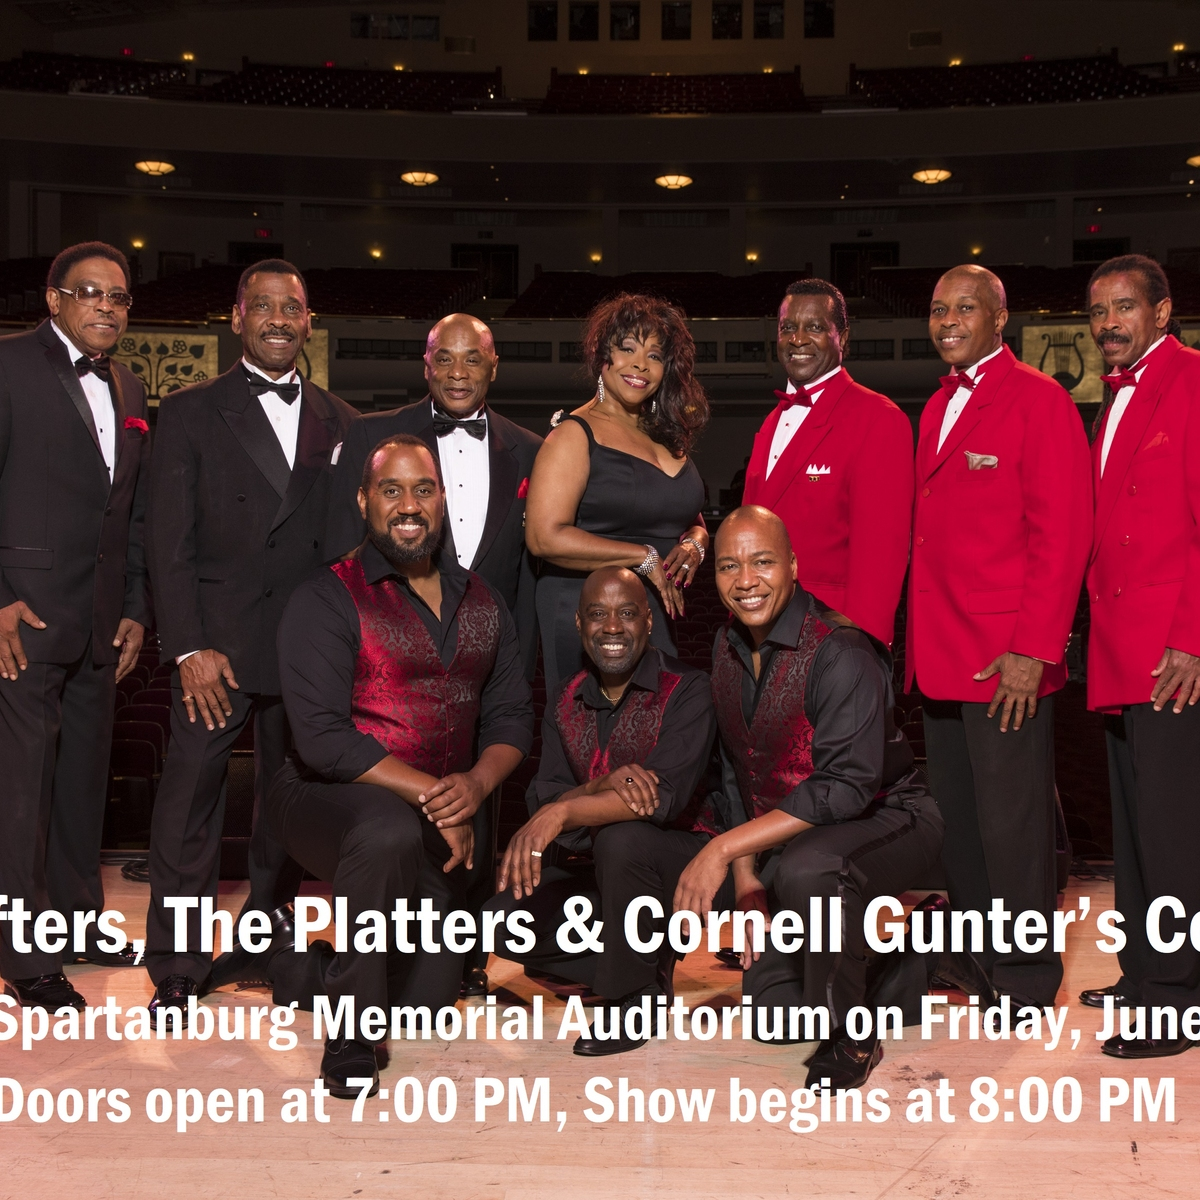 Rescheduled - The Drifters, The Platters & Cornell Gunter's Coasters